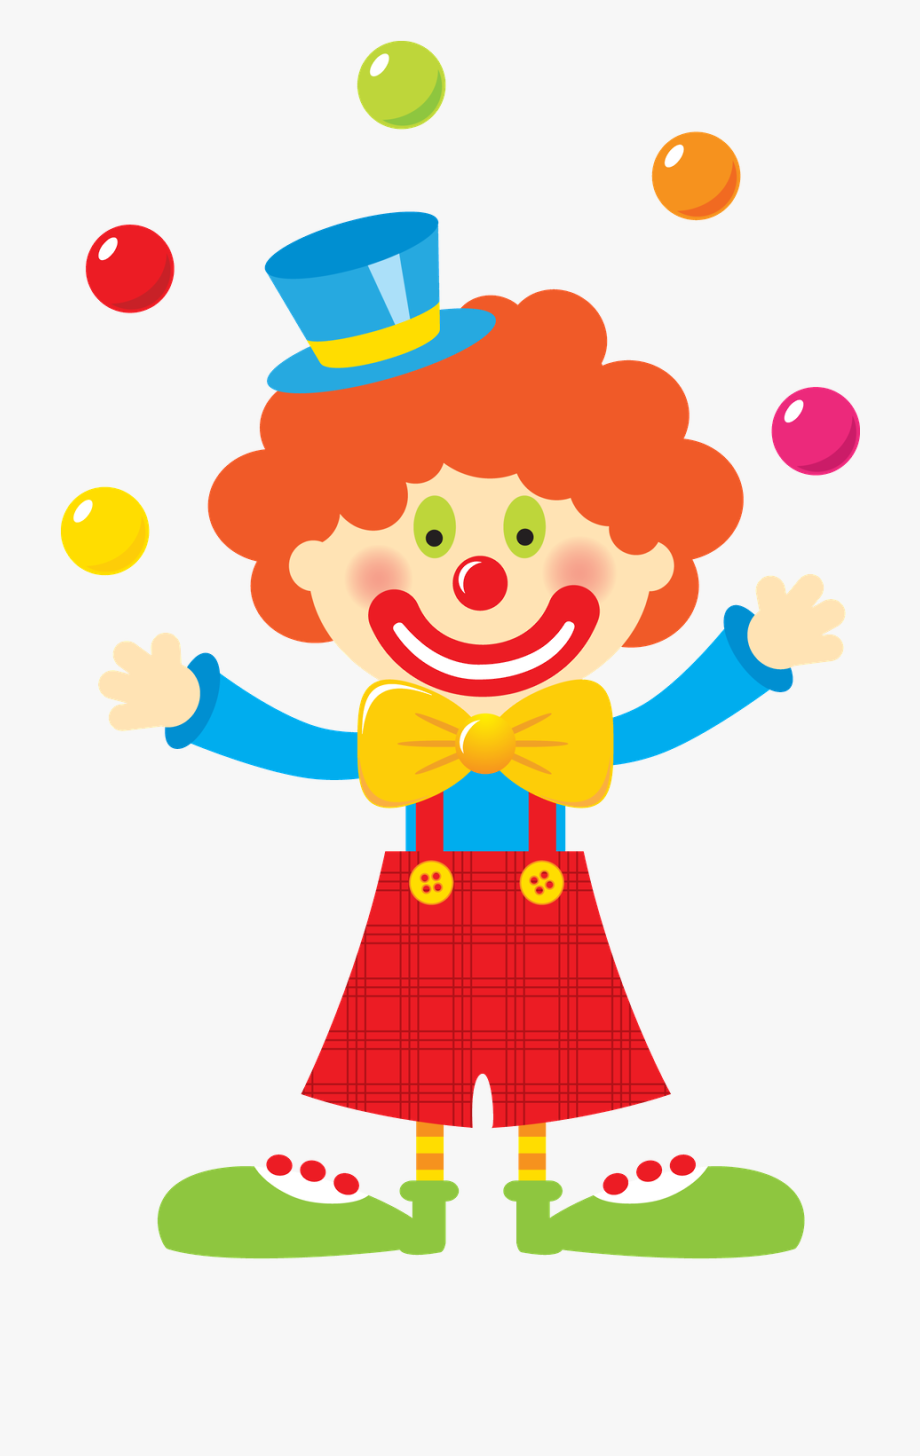 Clown juggling clipart jpg freeuse download Carnival Clown Clipart - Circus Clown Clipart , Transparent Cartoon ... jpg freeuse download